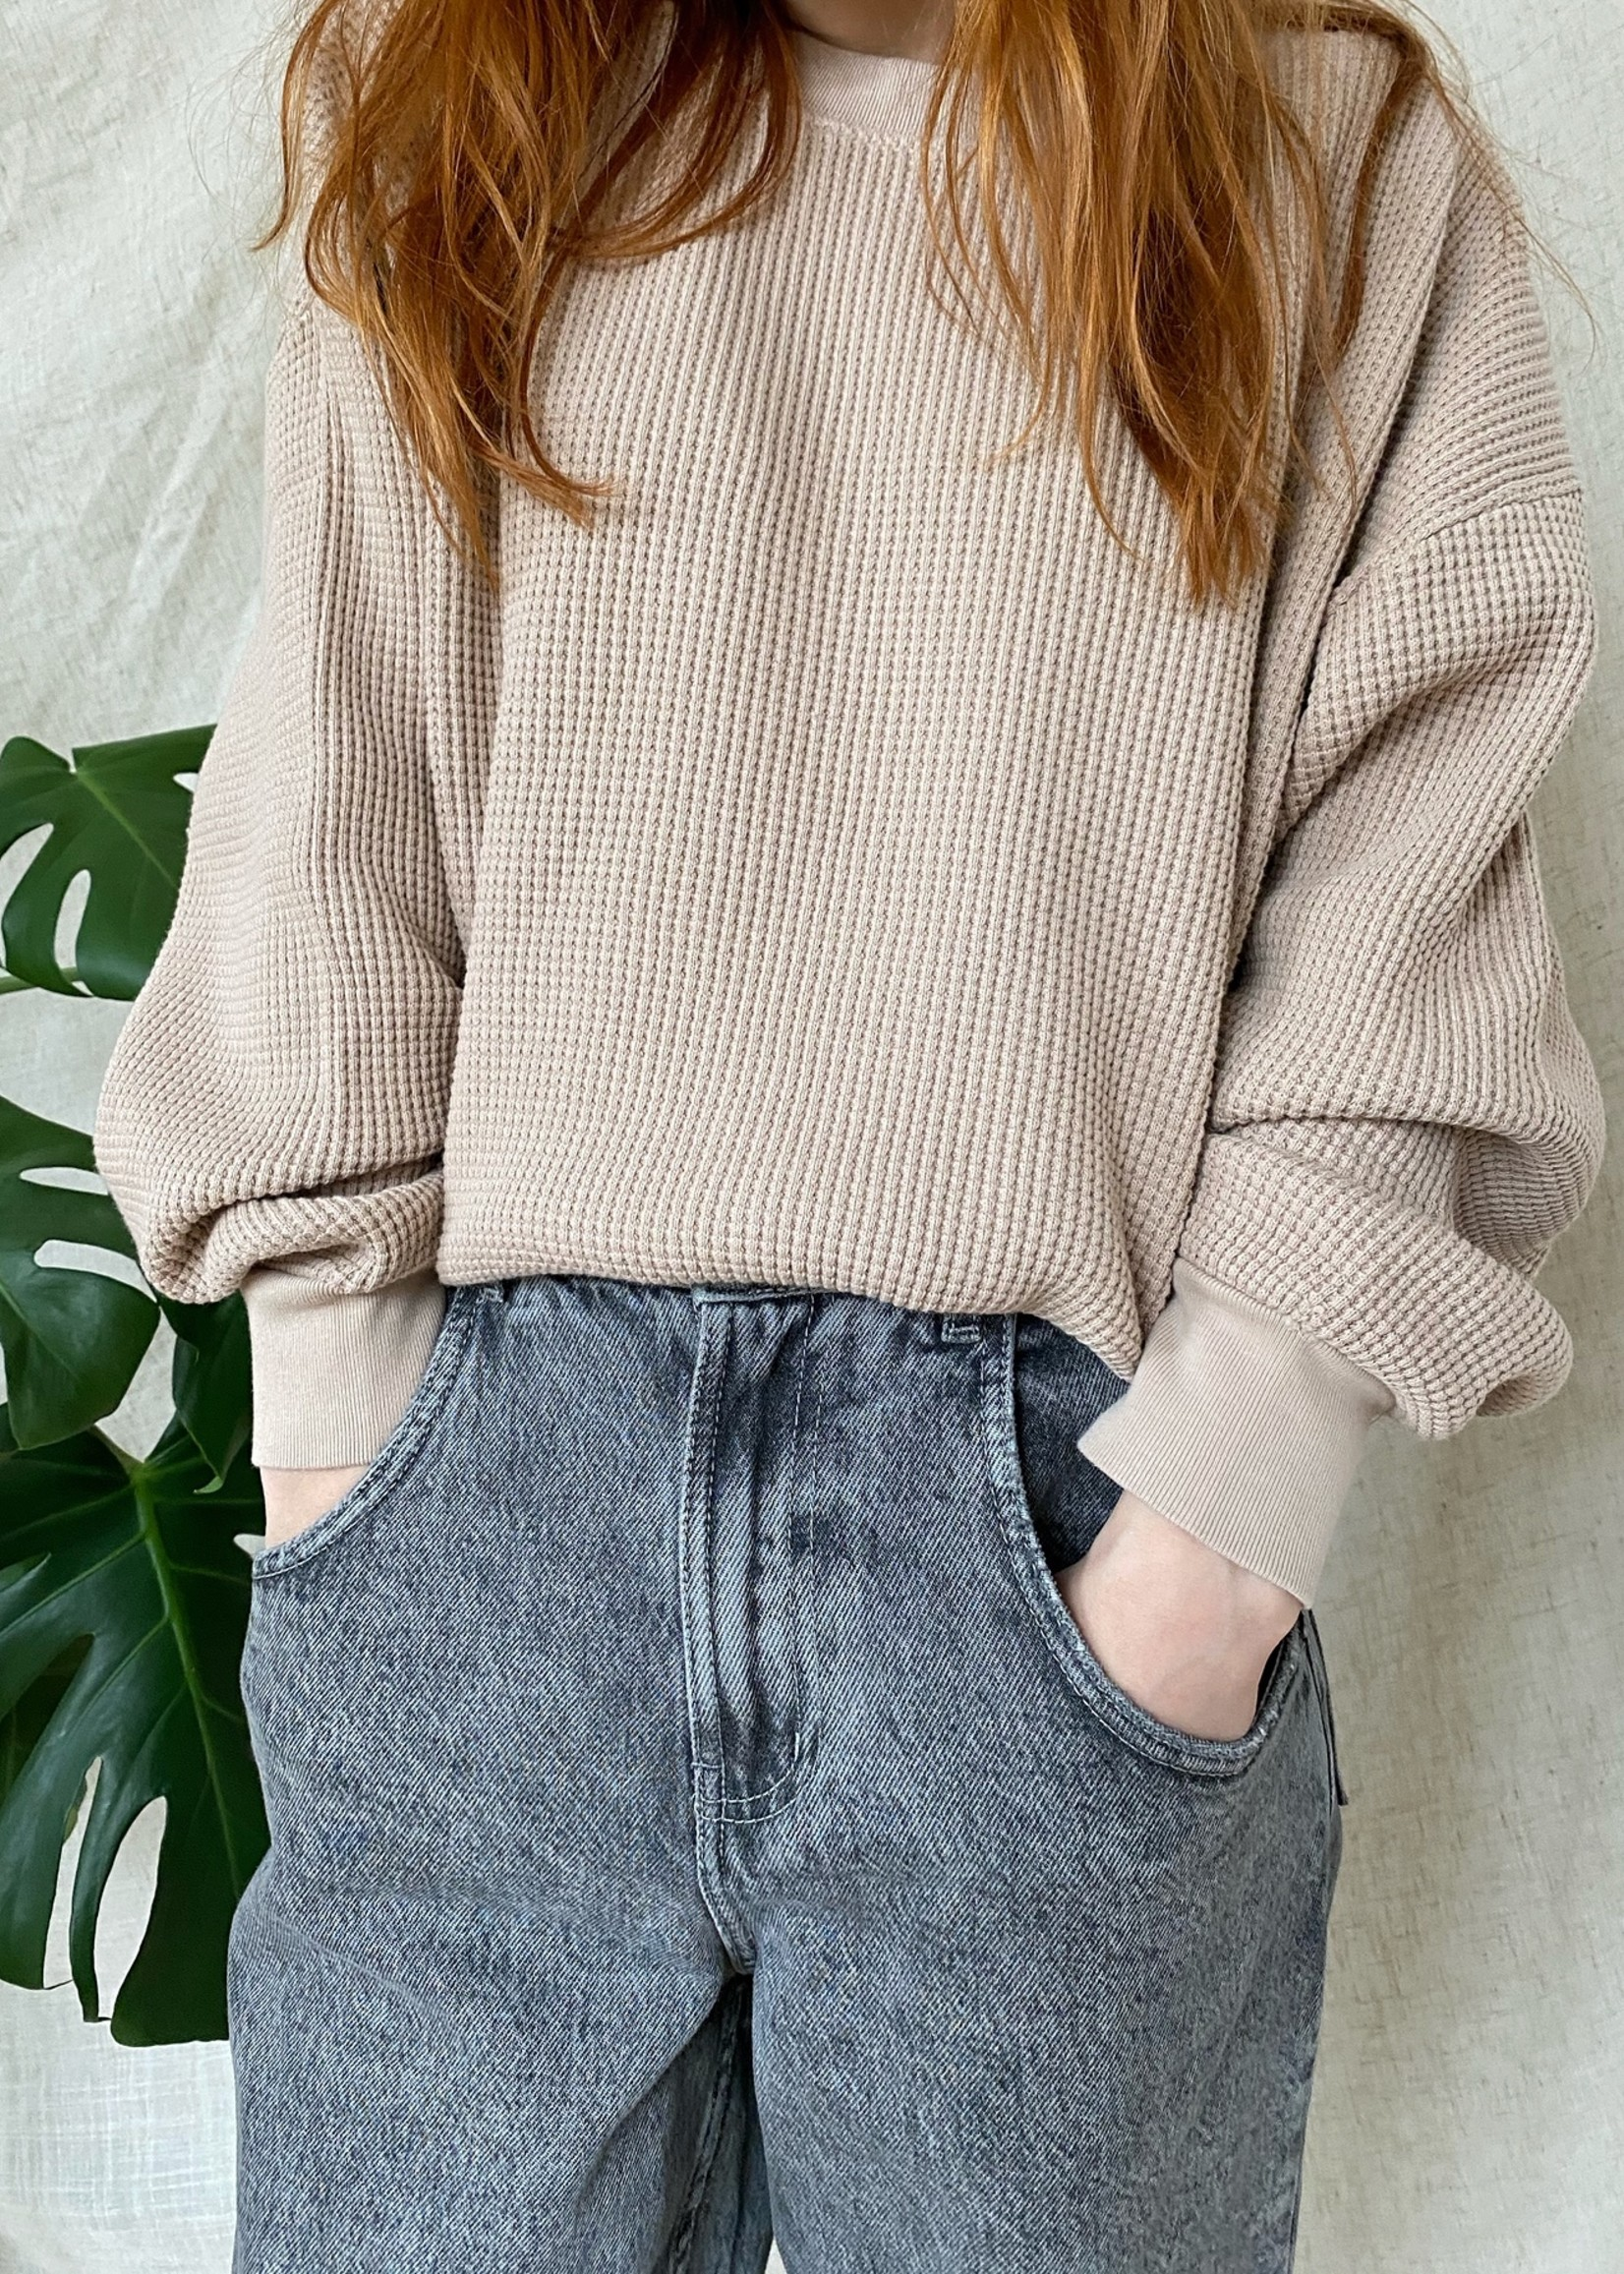 Sweater - Bowilove